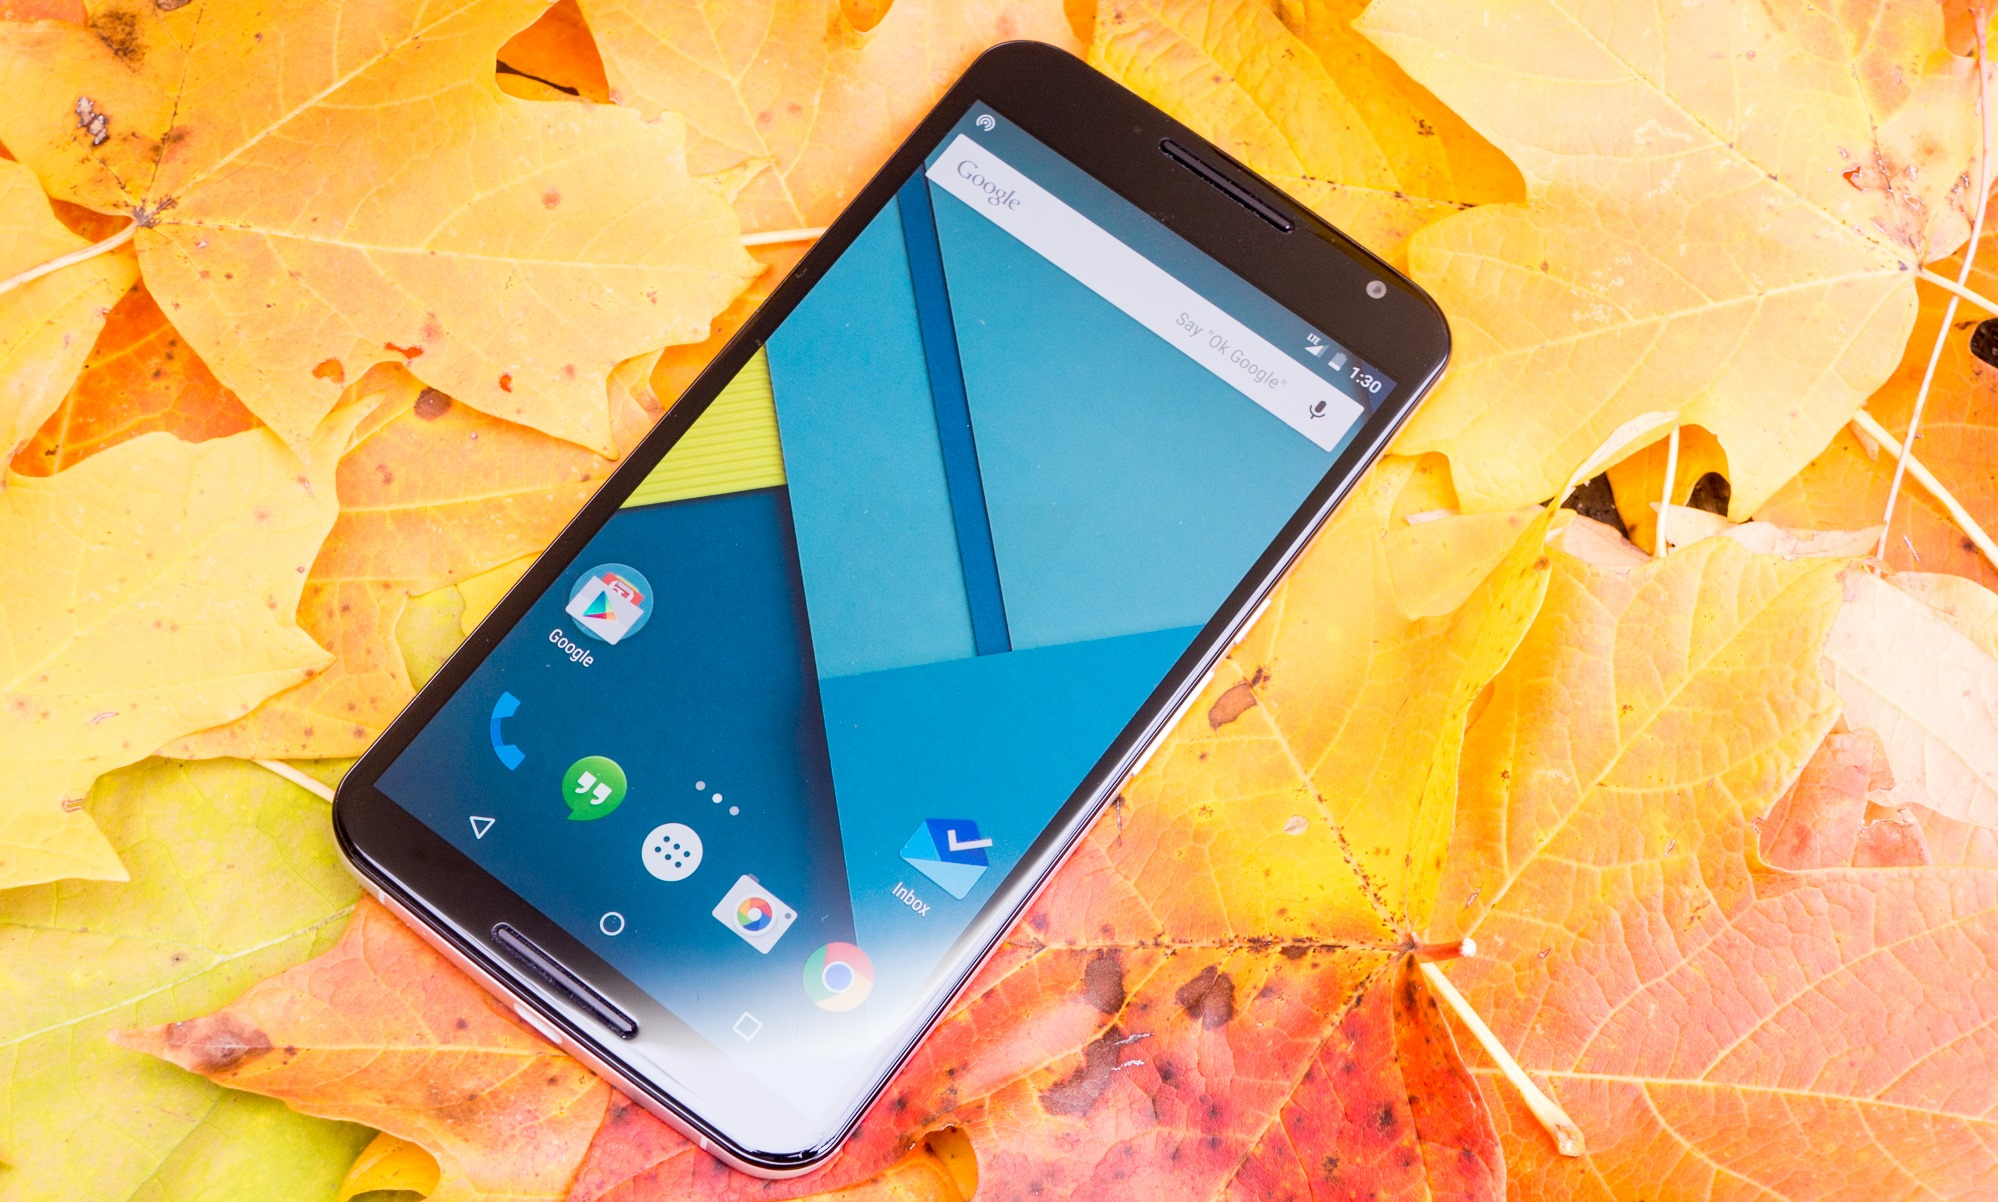 Unsupported: The best Nexus 6 ROMs to check out in a post